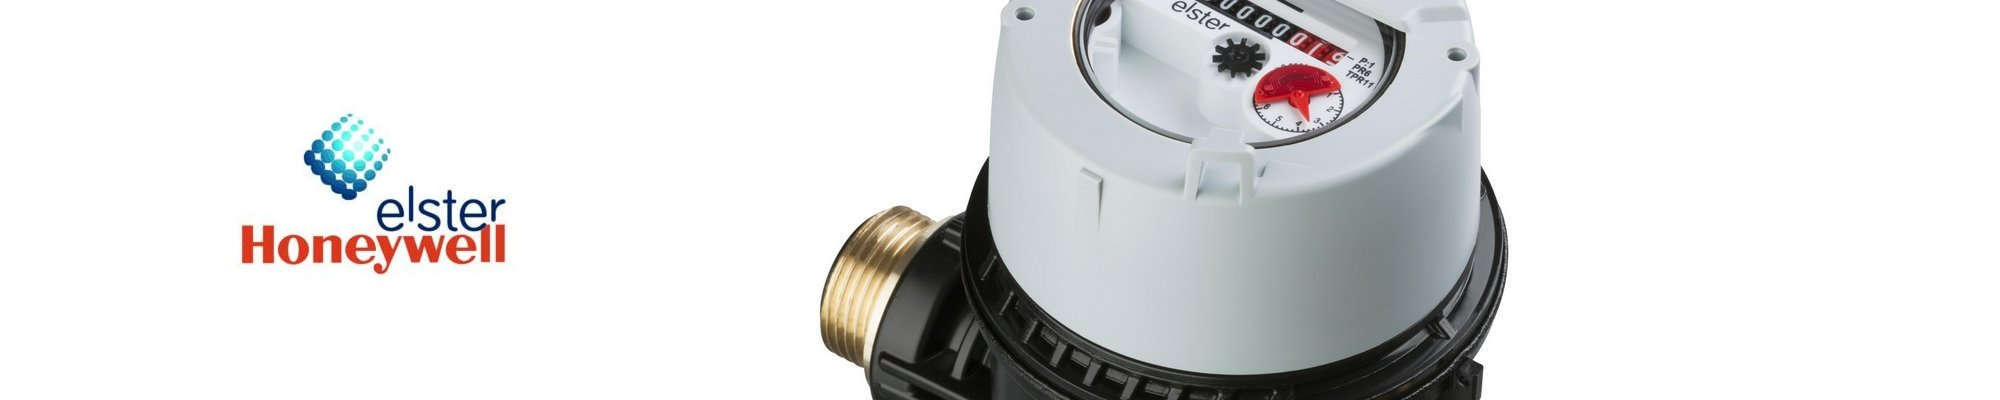 ODS website header Watermeter